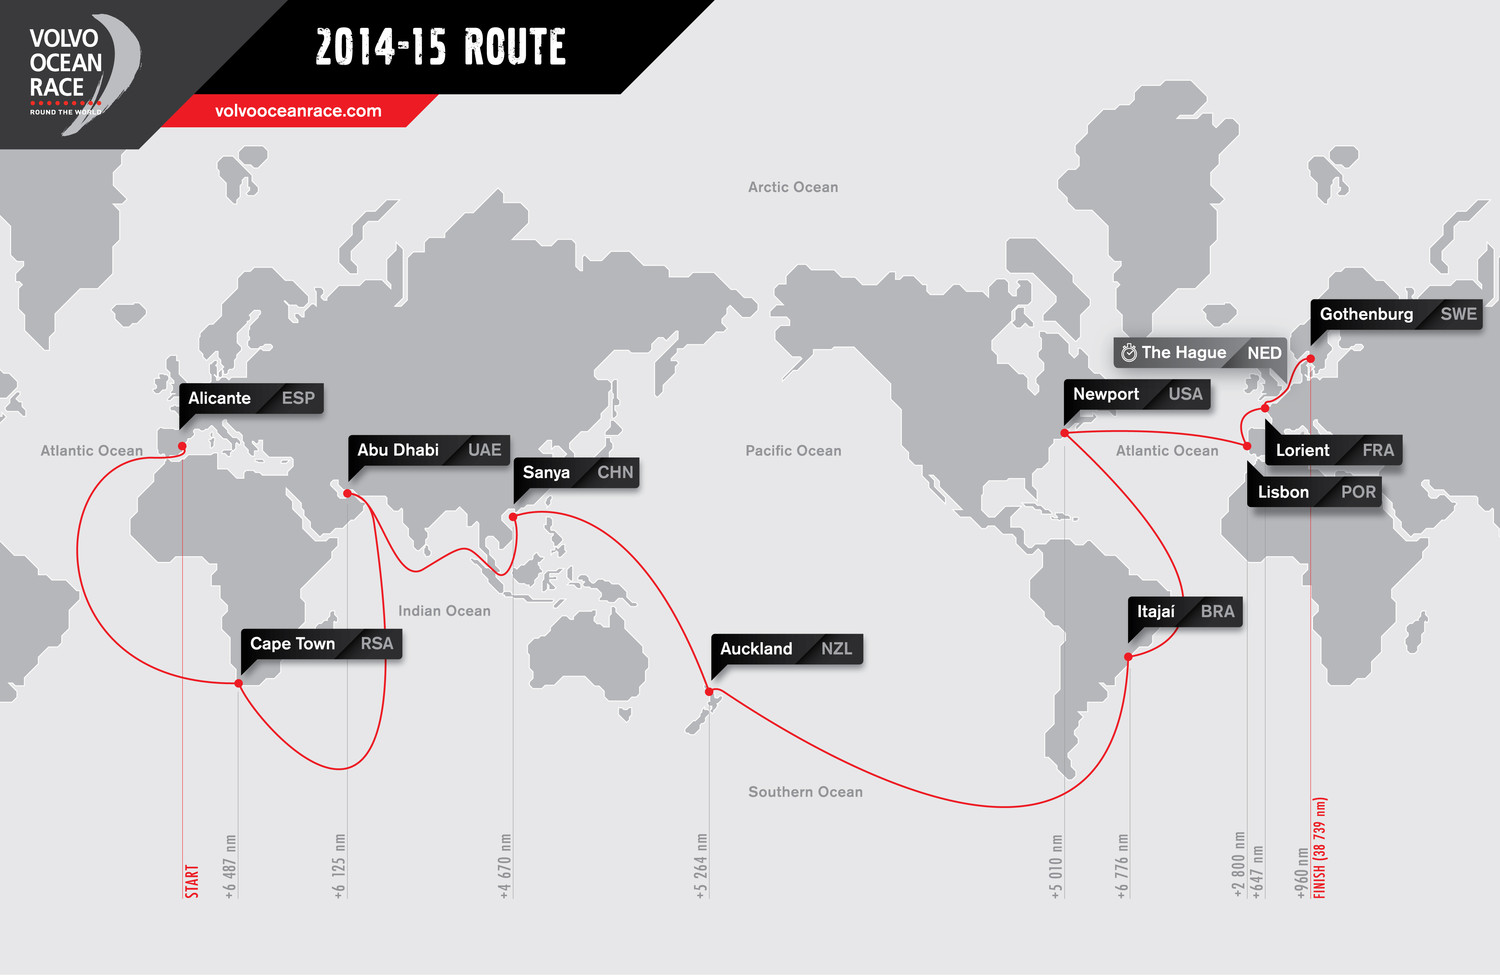 volvo ocean race 2014 route